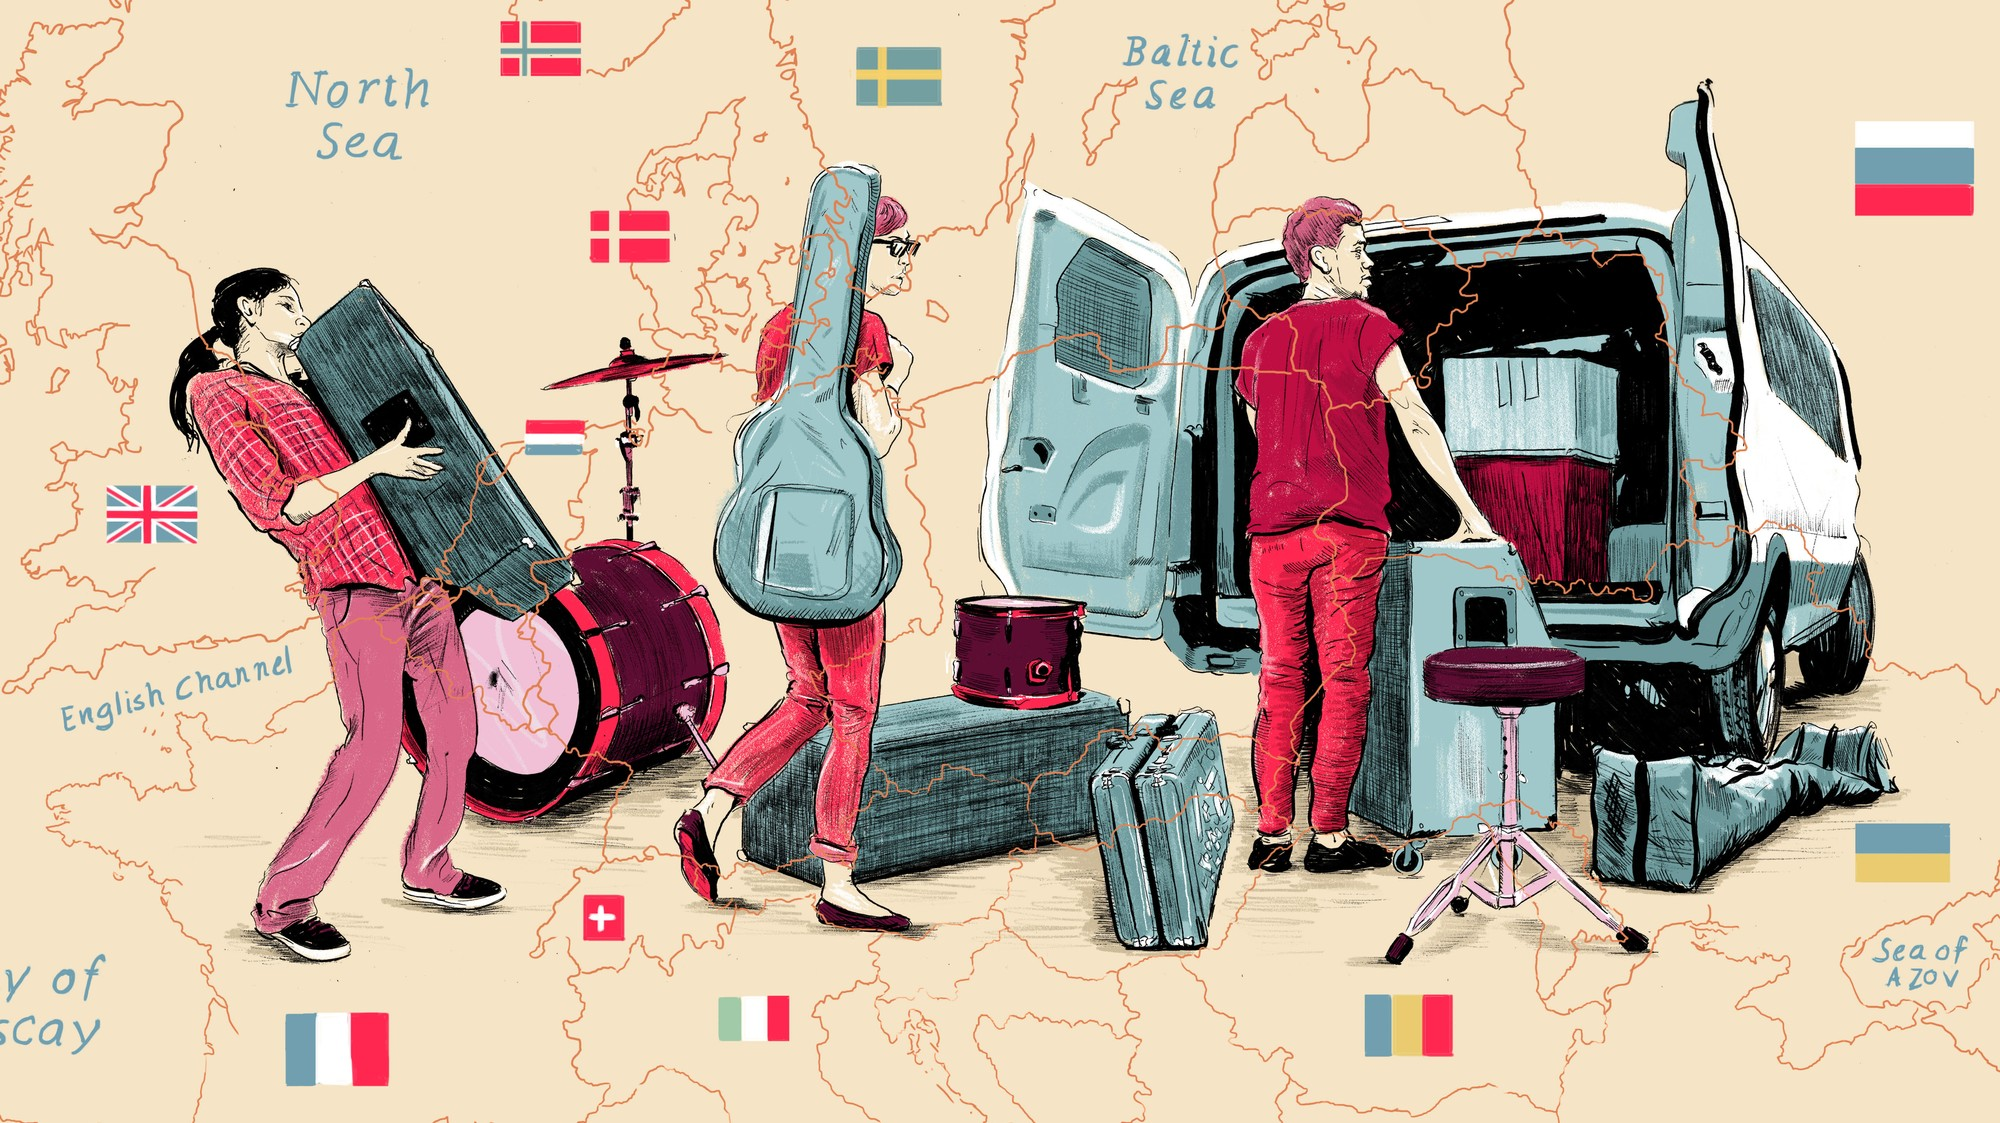 How to Book a European Tour as a Broke American with No